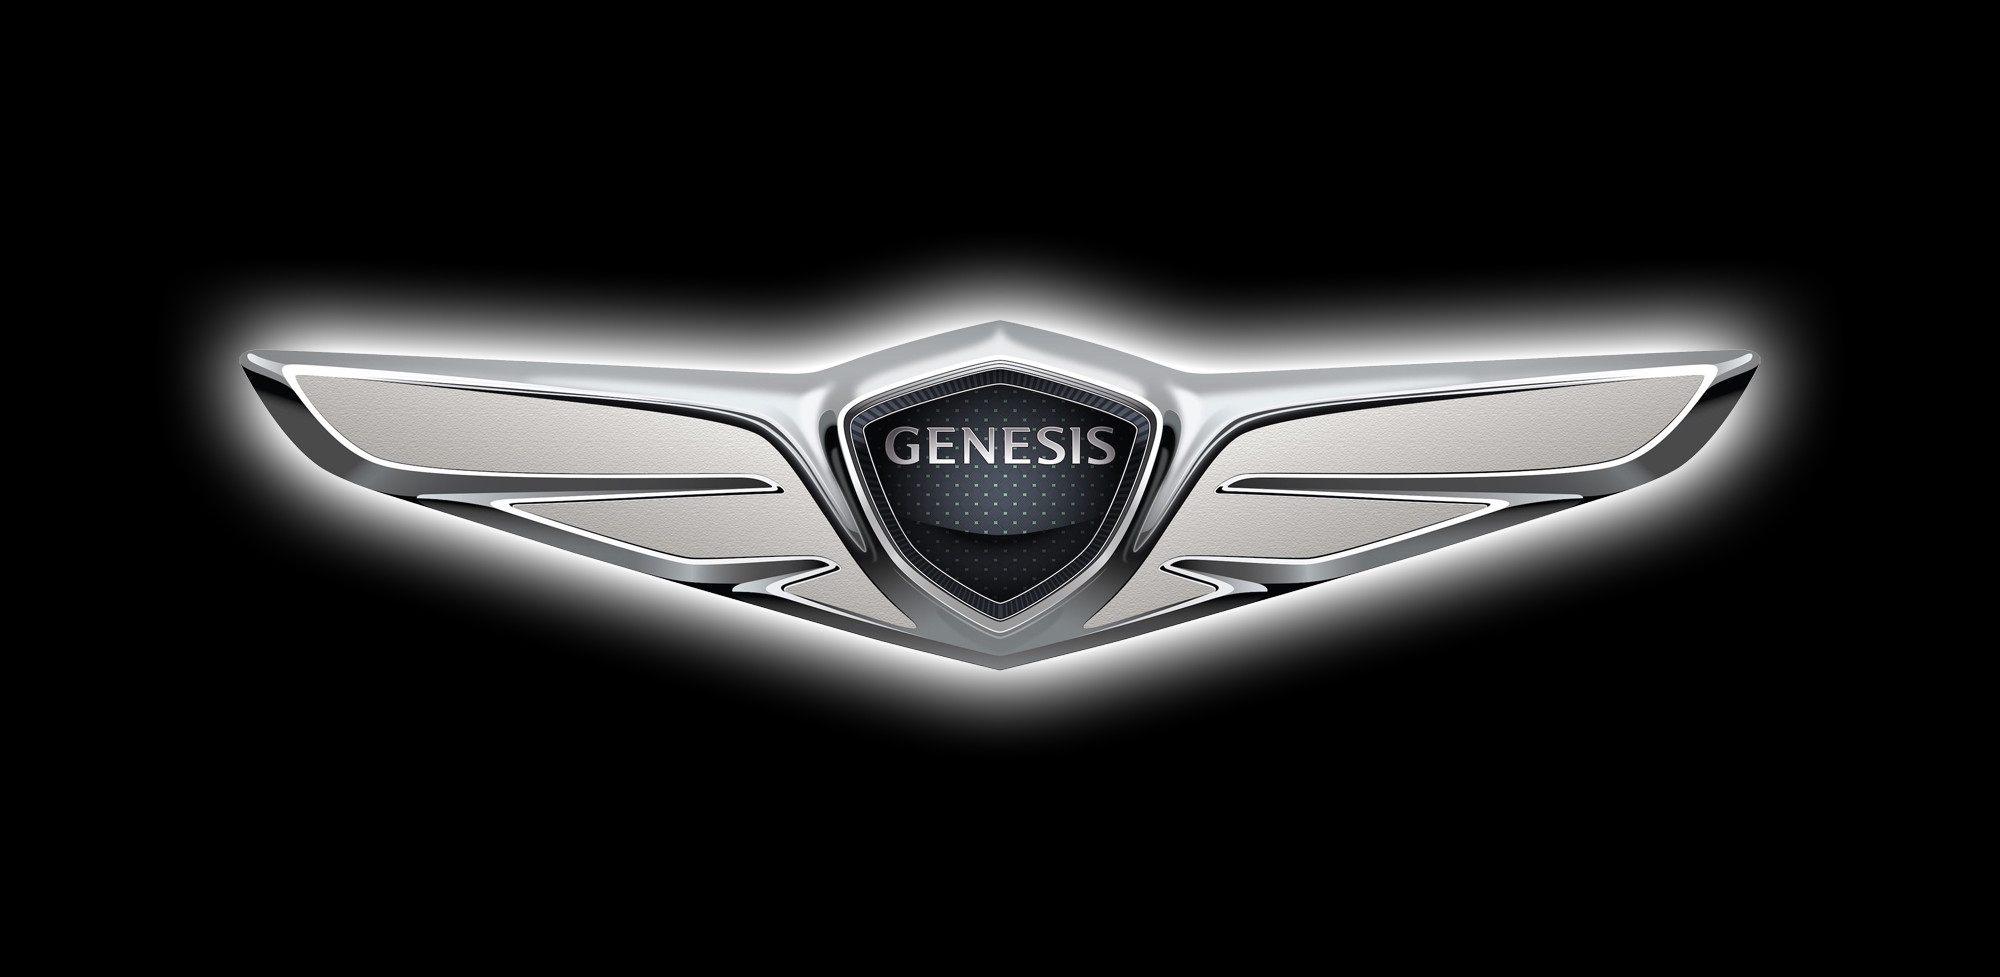 Genesis Car Company >> Genesis Logo Meaning and History [Genesis symbol]